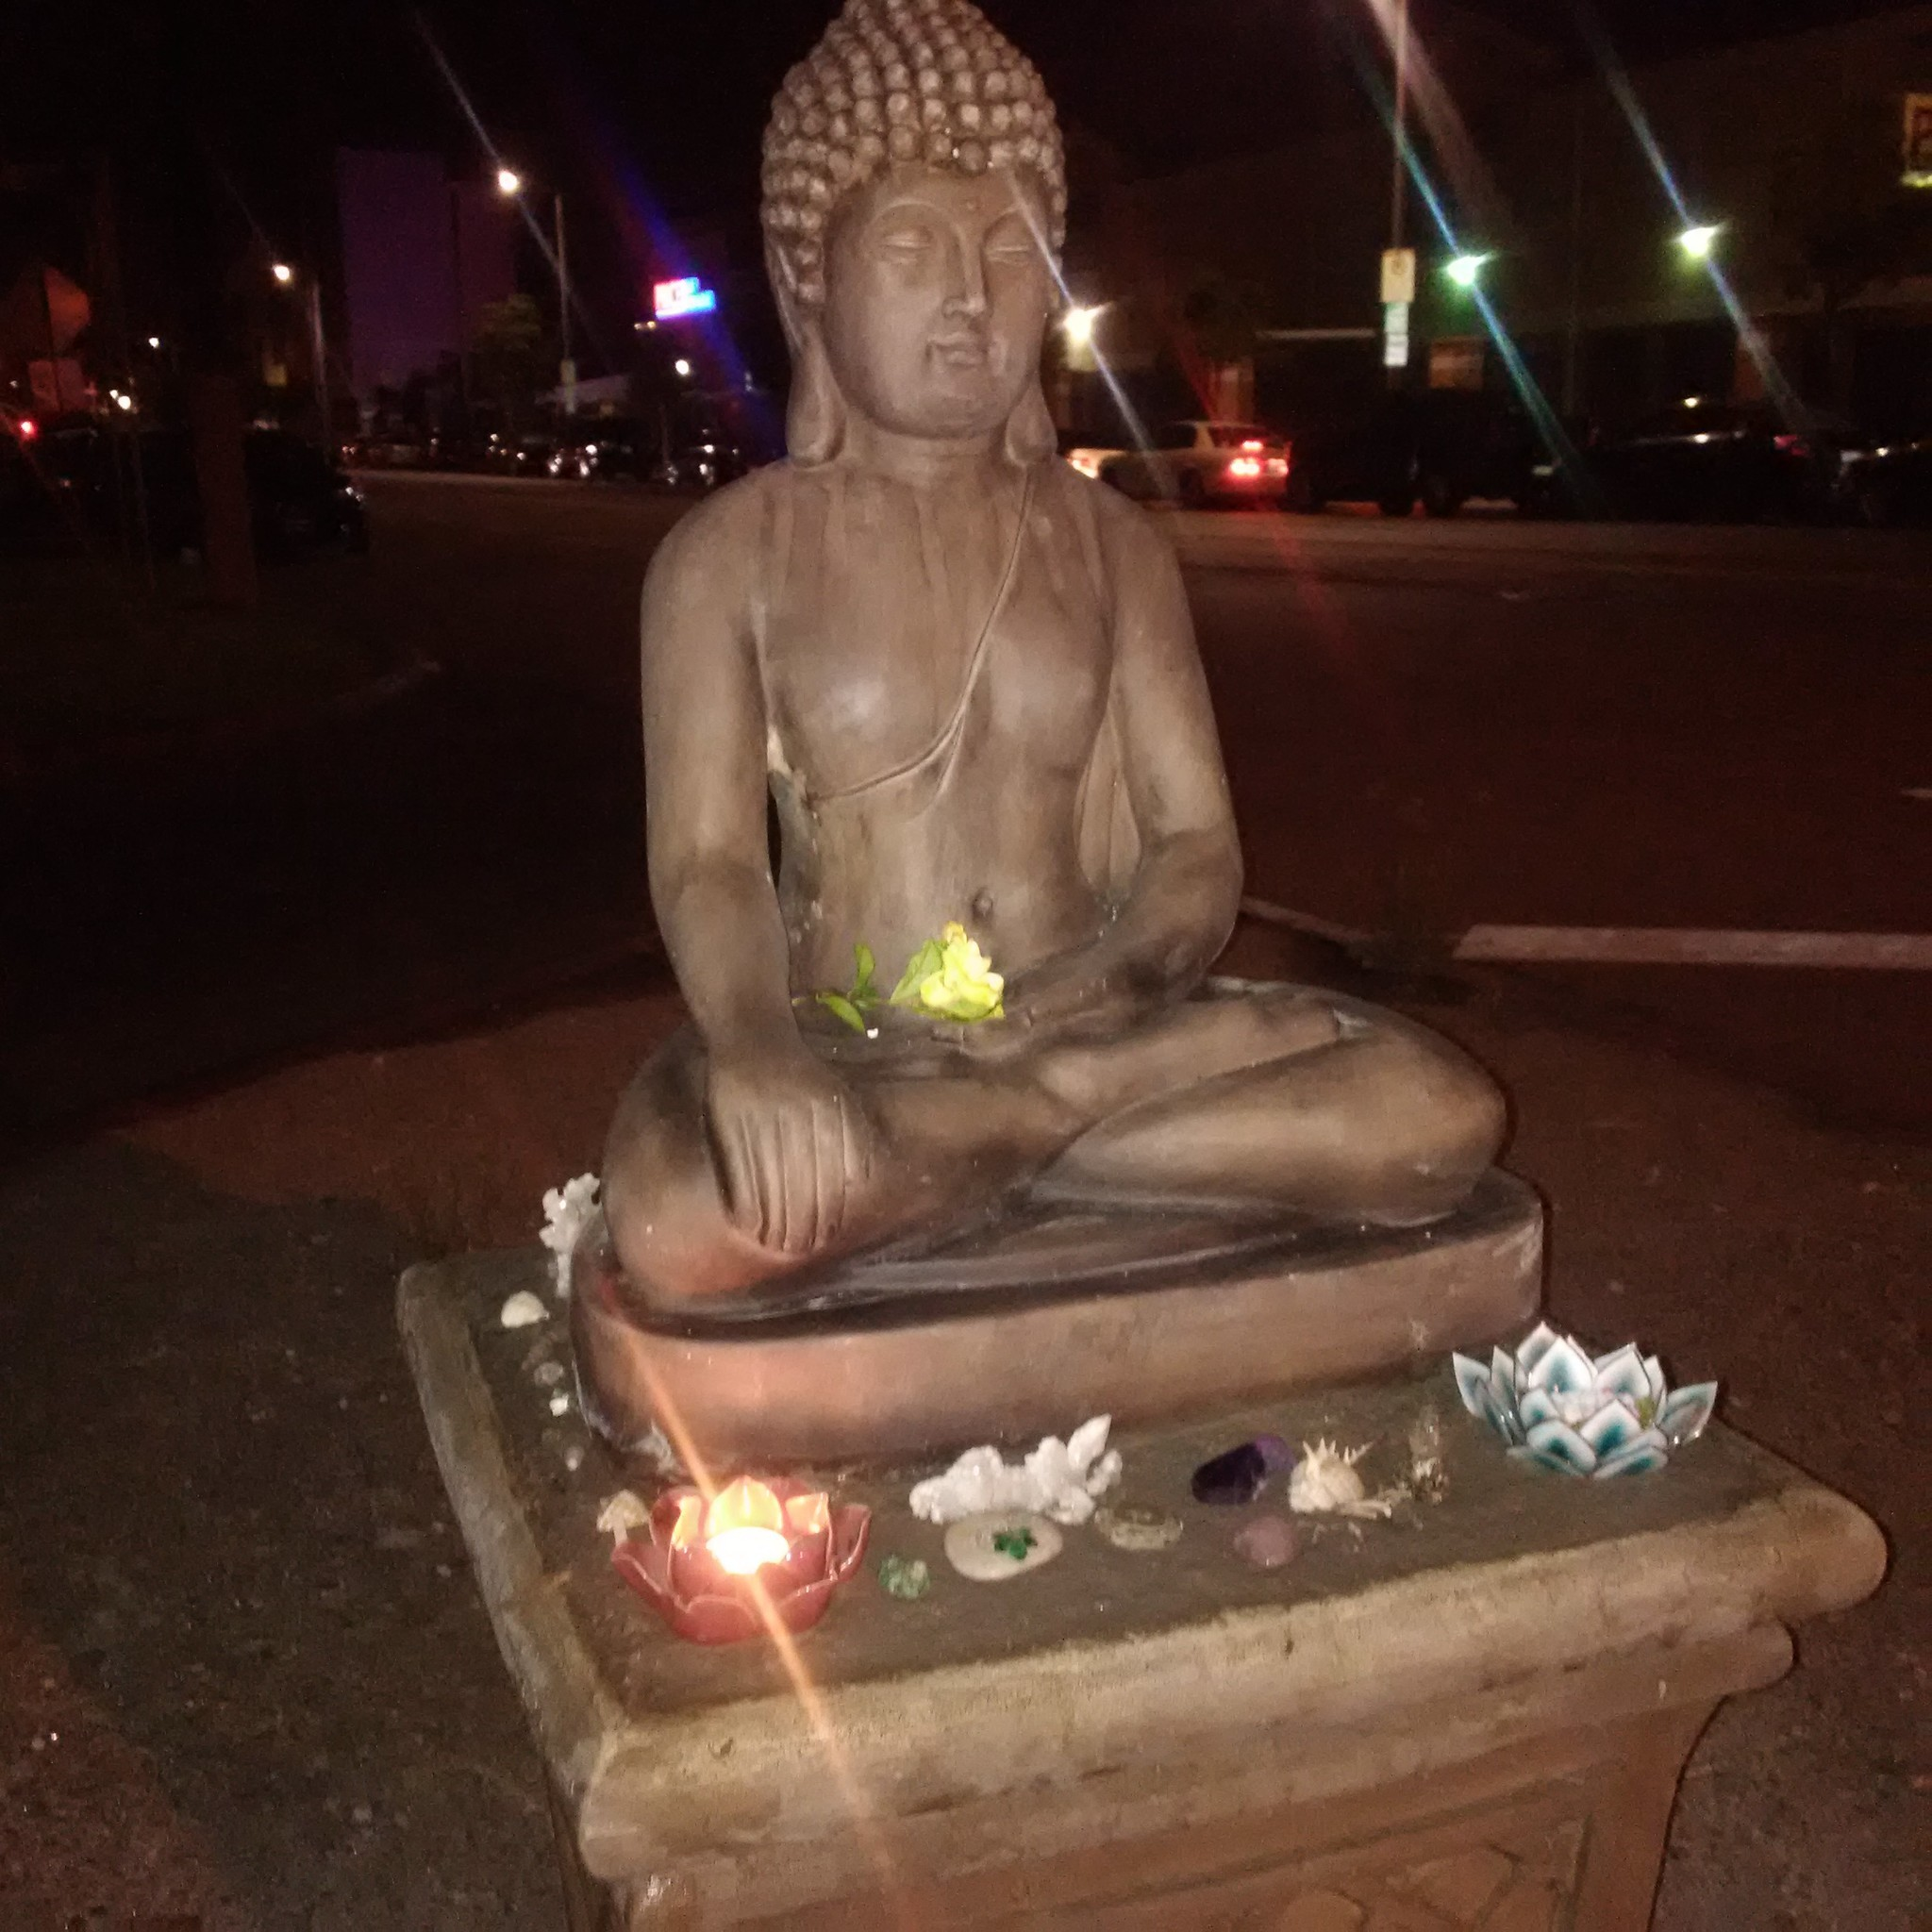 After years of bulky items being left on a traffic island in Palms, someone put a Buddha statue there. Residents treasure the statue, which has been vandalized multiple times.